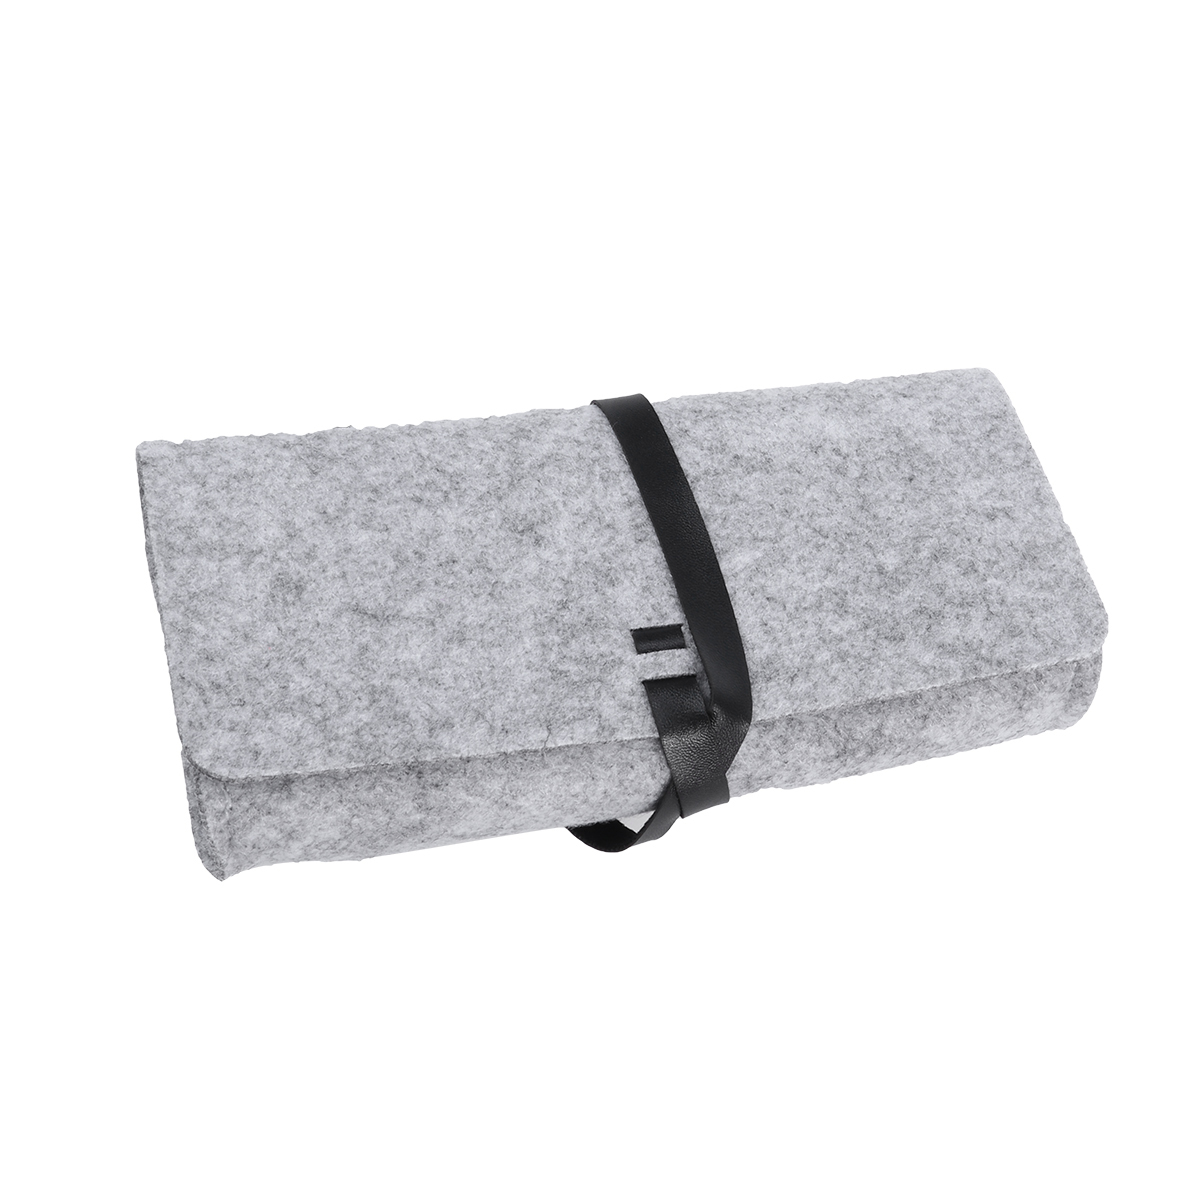 Aggressive Retro Fashion Glasses Bag Portable Felt Soft Eyeglasses Sunglasses Protective Roll Up Case Pouch